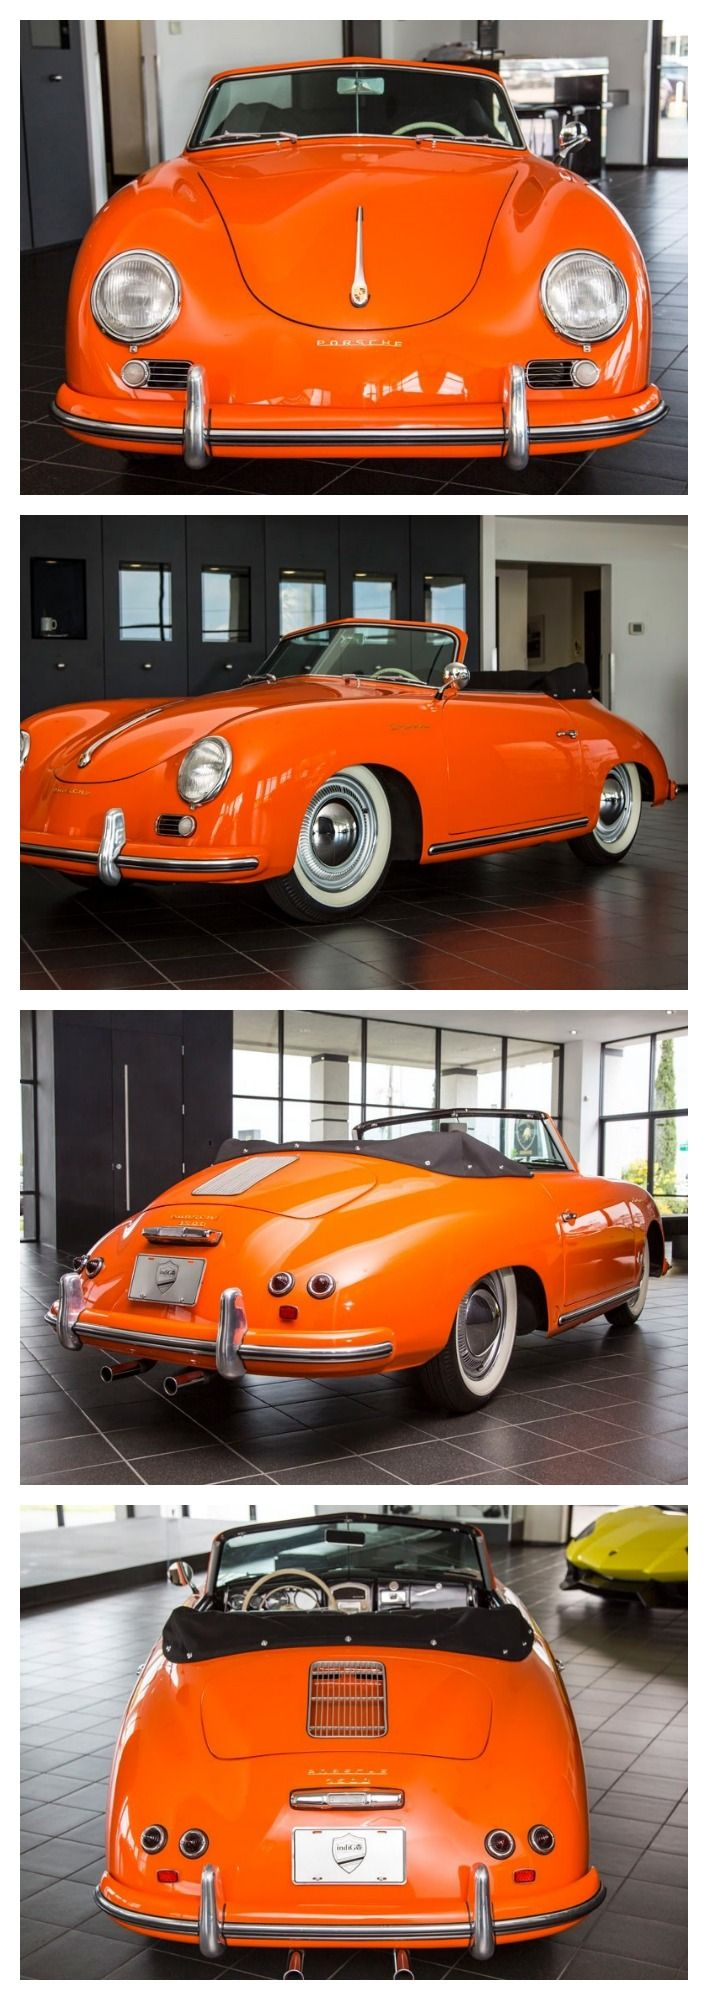 1955 Porsche 356 Continental Cabriolet. Words cannot describe the beauty and rarity of this sportscar  #FlashbackFriday